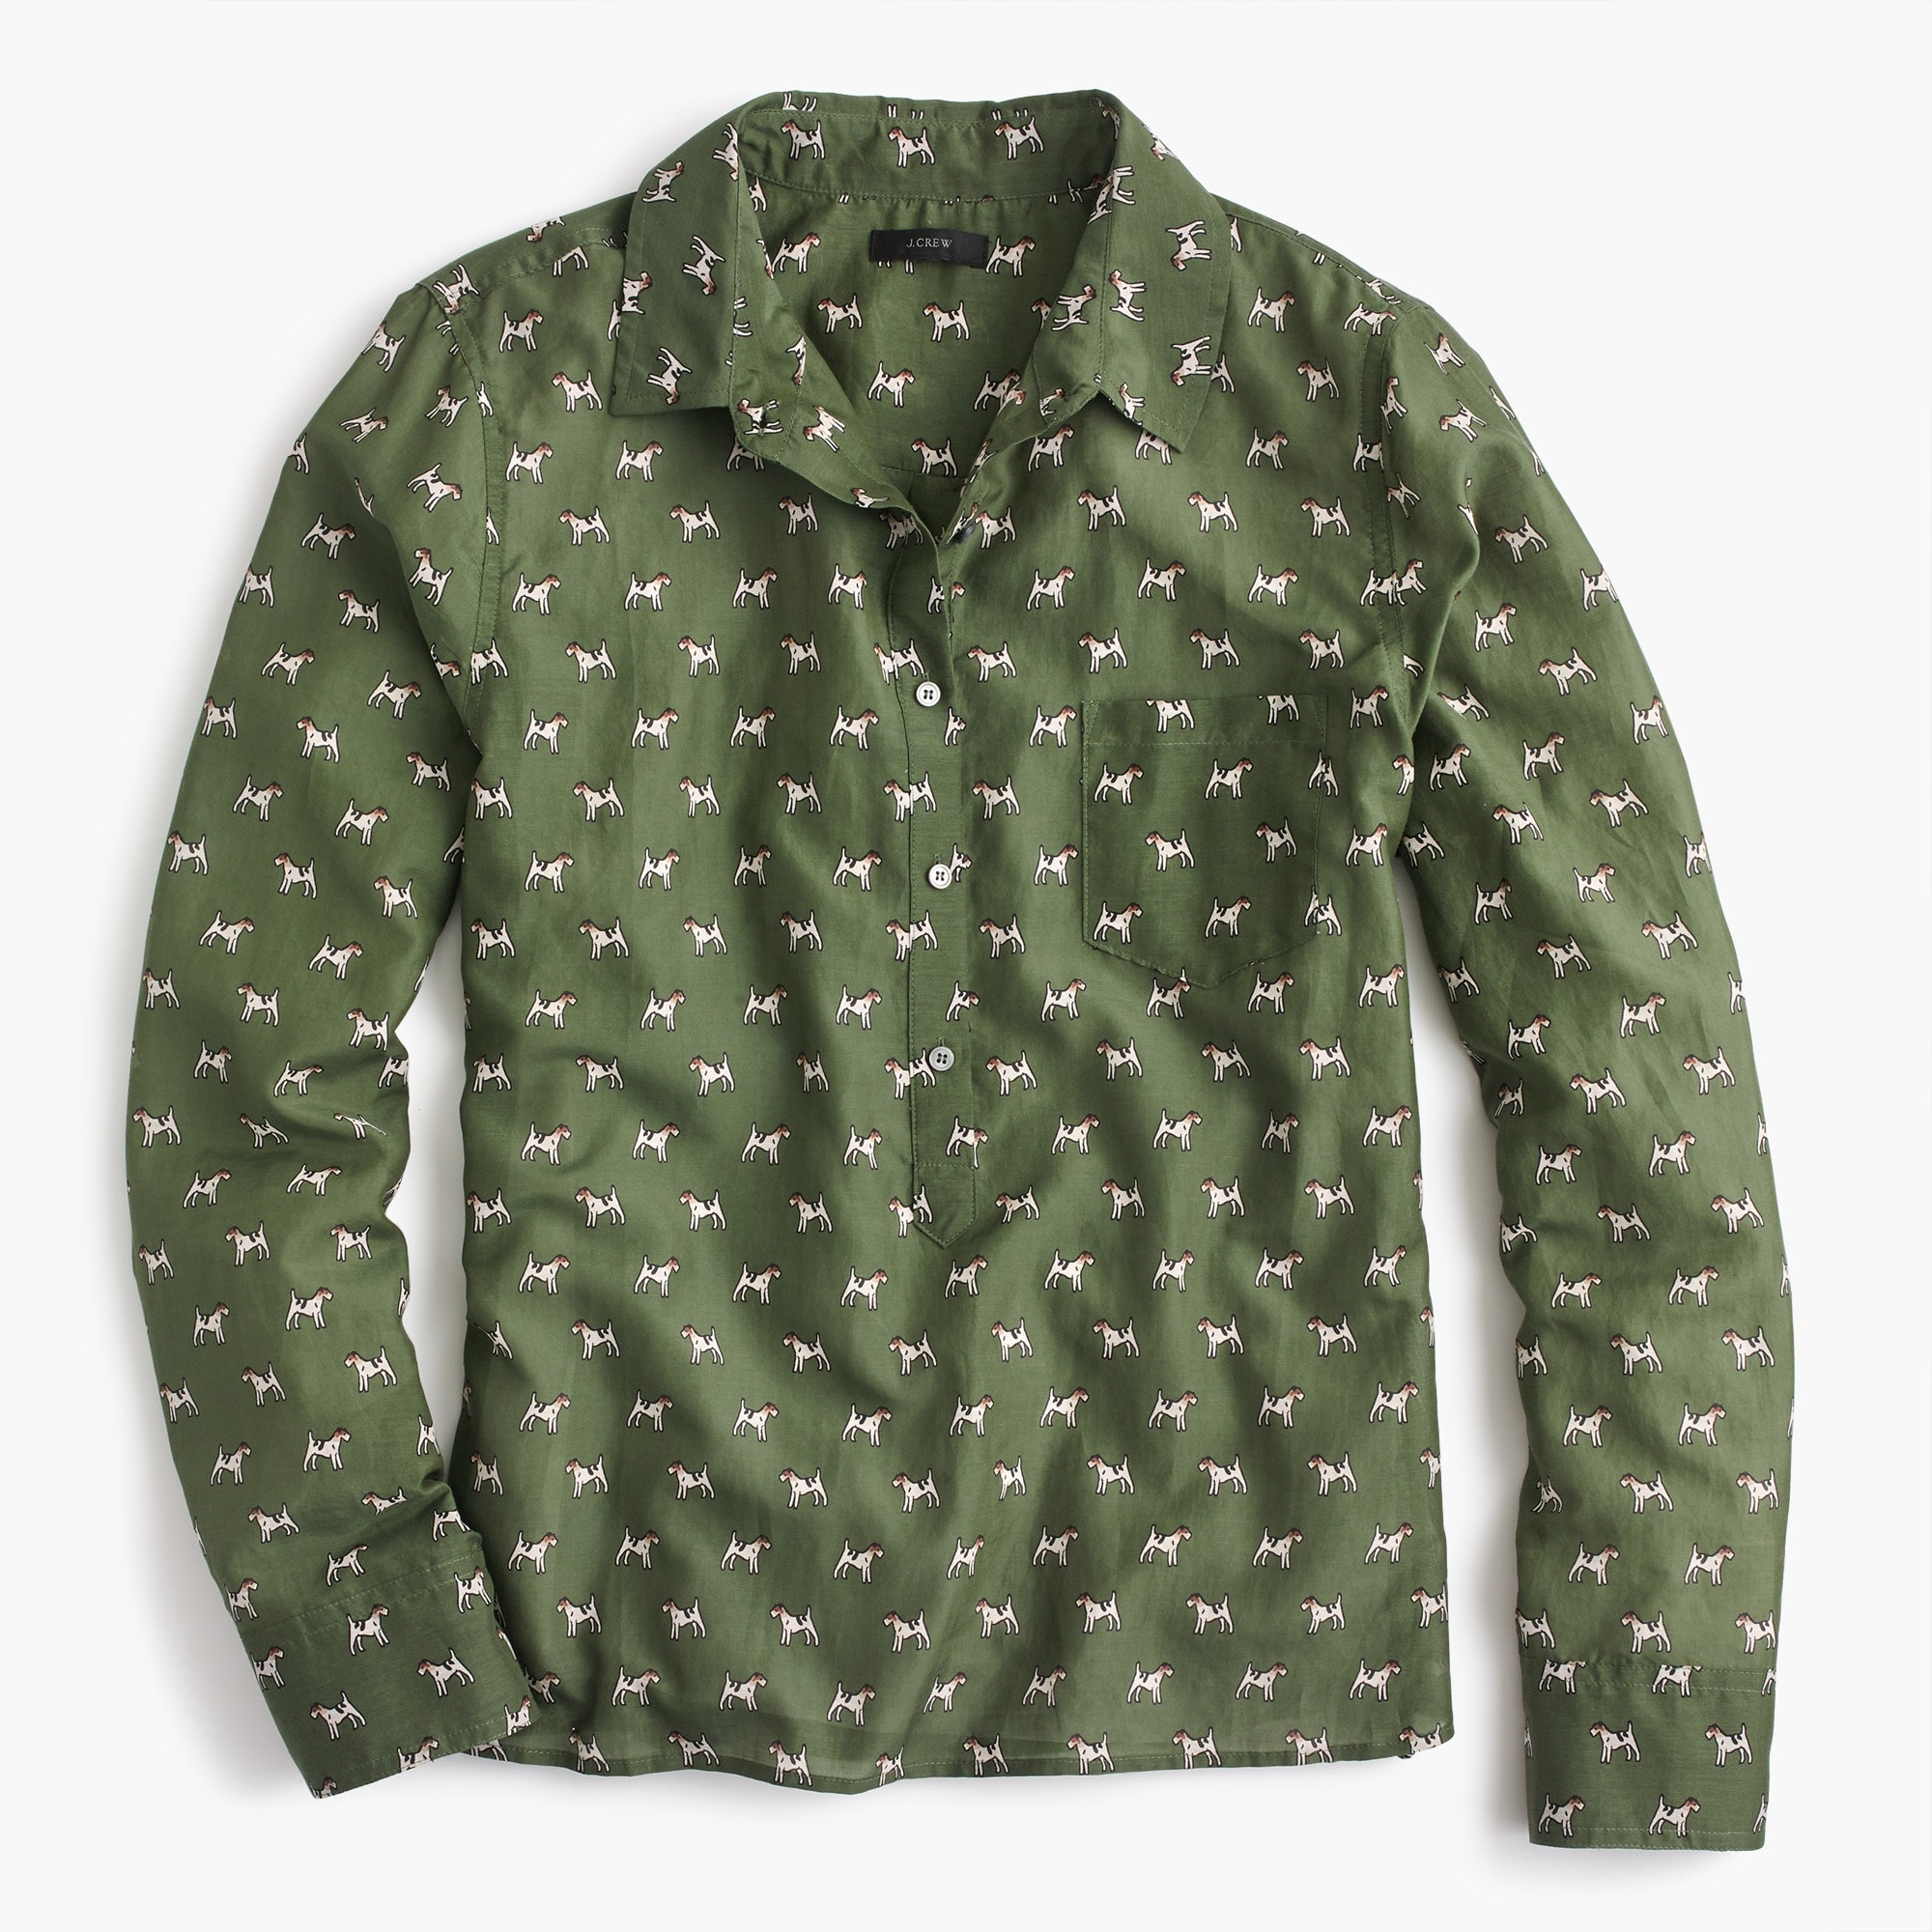 Popover shirt in Terrier print